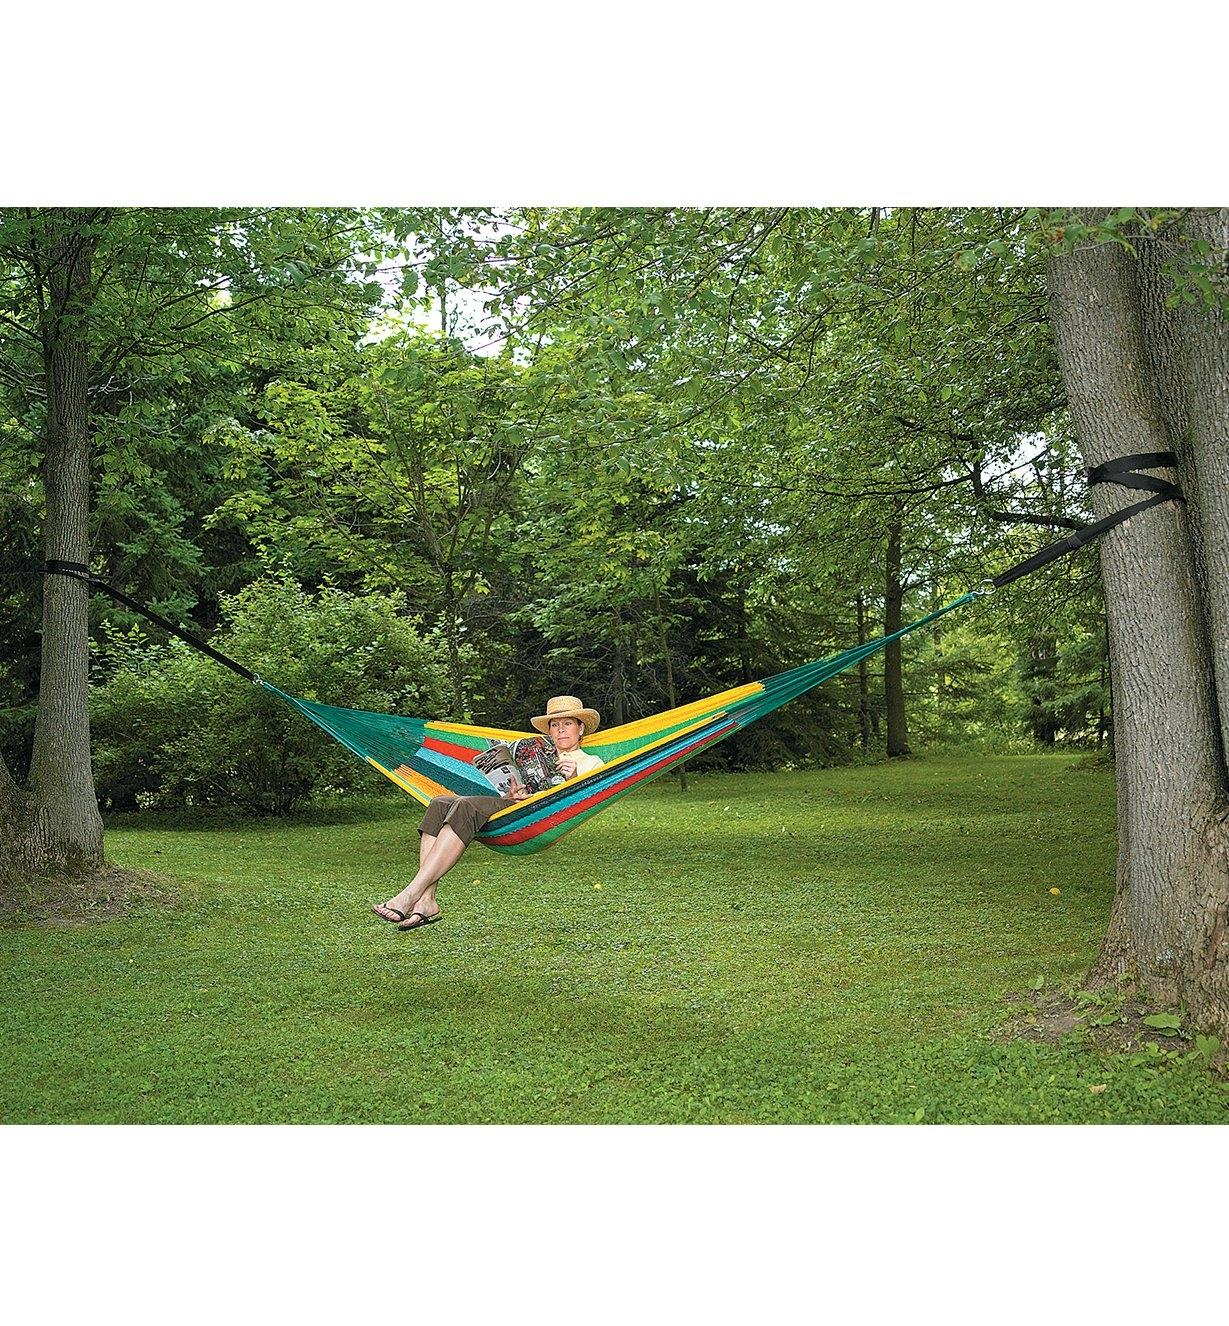 A woman relaxes in a hammock held between two trees by the Hammock Tree Straps